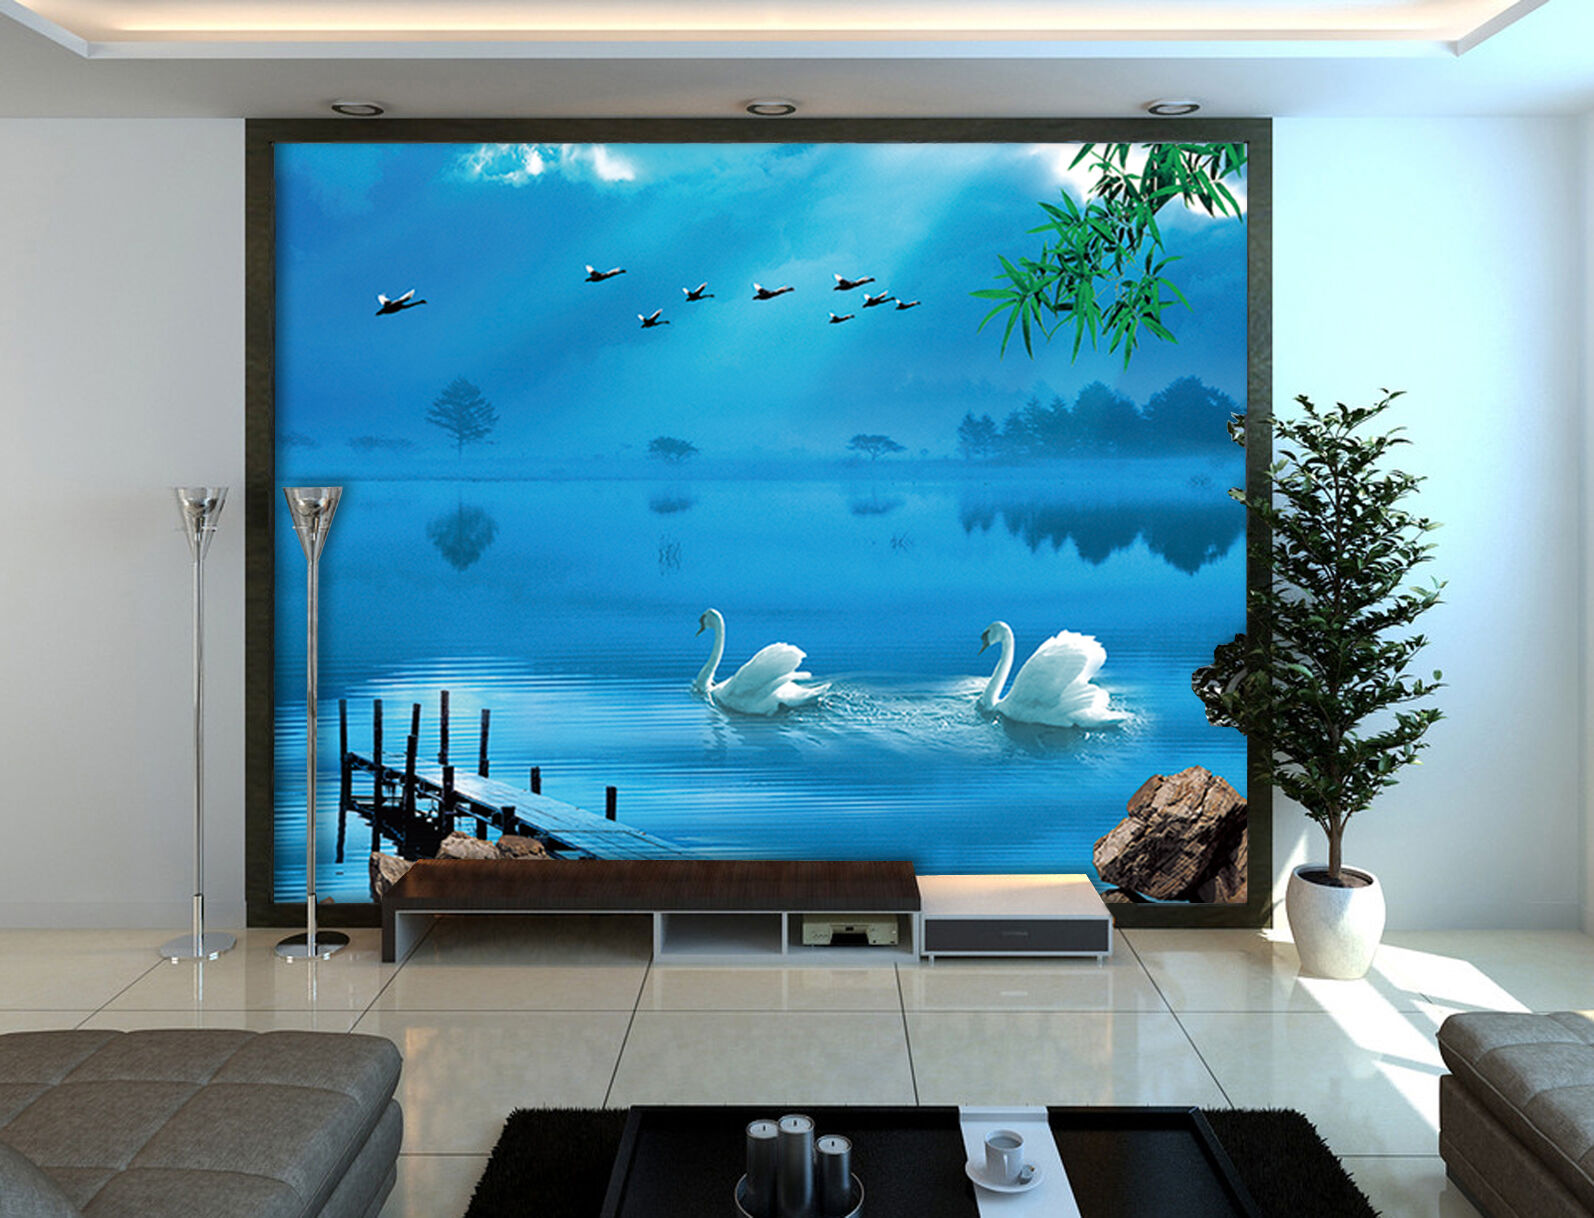 3D Blau lake, swan 6567 Wall Paper Print Wall Decal Deco Indoor Wall Murals